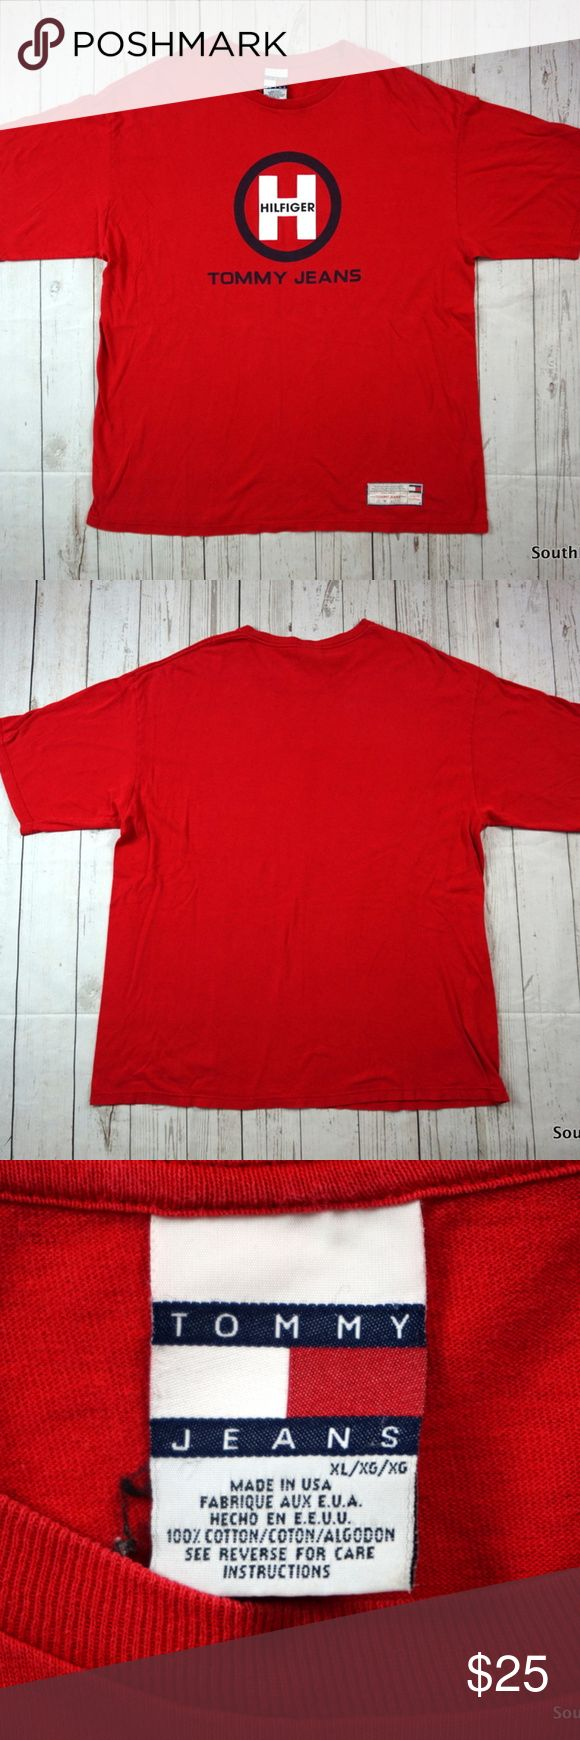 """VTG 90s Tommy Jeans T-Shirt, Tommy Hilfiger XL Vintage 90s Tommy Jeans T-Shirt, Tommy Hilfiger T-Shirt, Men's XL, Extra Large, Red, 90s Fashion, Vintage Tommy, Tommy Jeans, VTG  Brand:    Tommy Hilfiger Color:     Red Size:       Men's Extra Large, XL     Material: 100% Cotton     Detailed Measurements: (Front Side of Garment has been measured laying flat on a table)  Sleeves:......... 10.5"""" inches  Chest:............ 25.5"""" inches Length:…......   32.5"""" inches  Ships in 1 business day or…"""